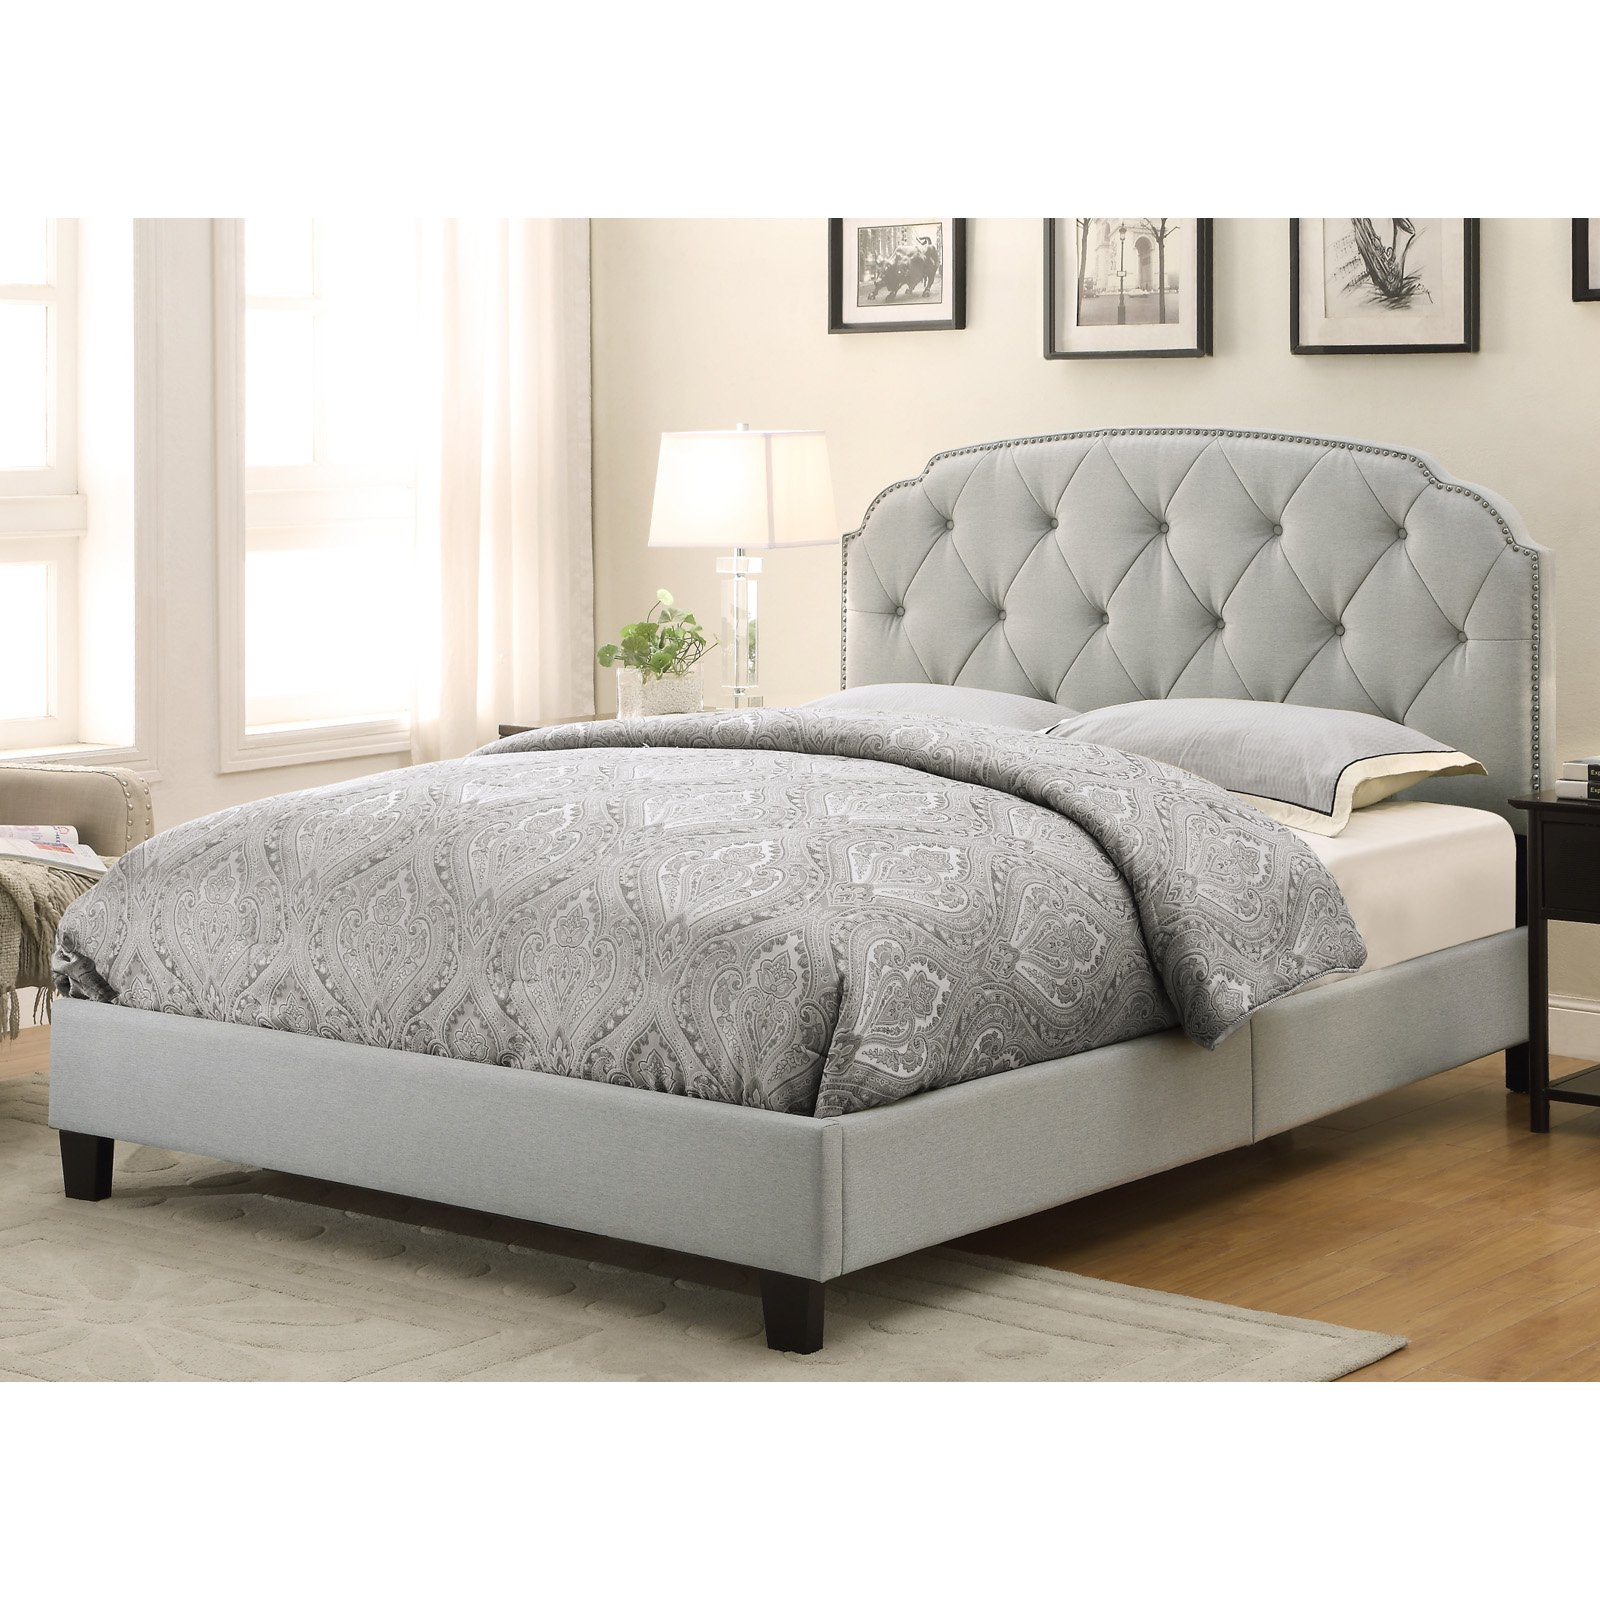 Trespass Marmor Tufted Nail Head Upholstered Bed - Queen